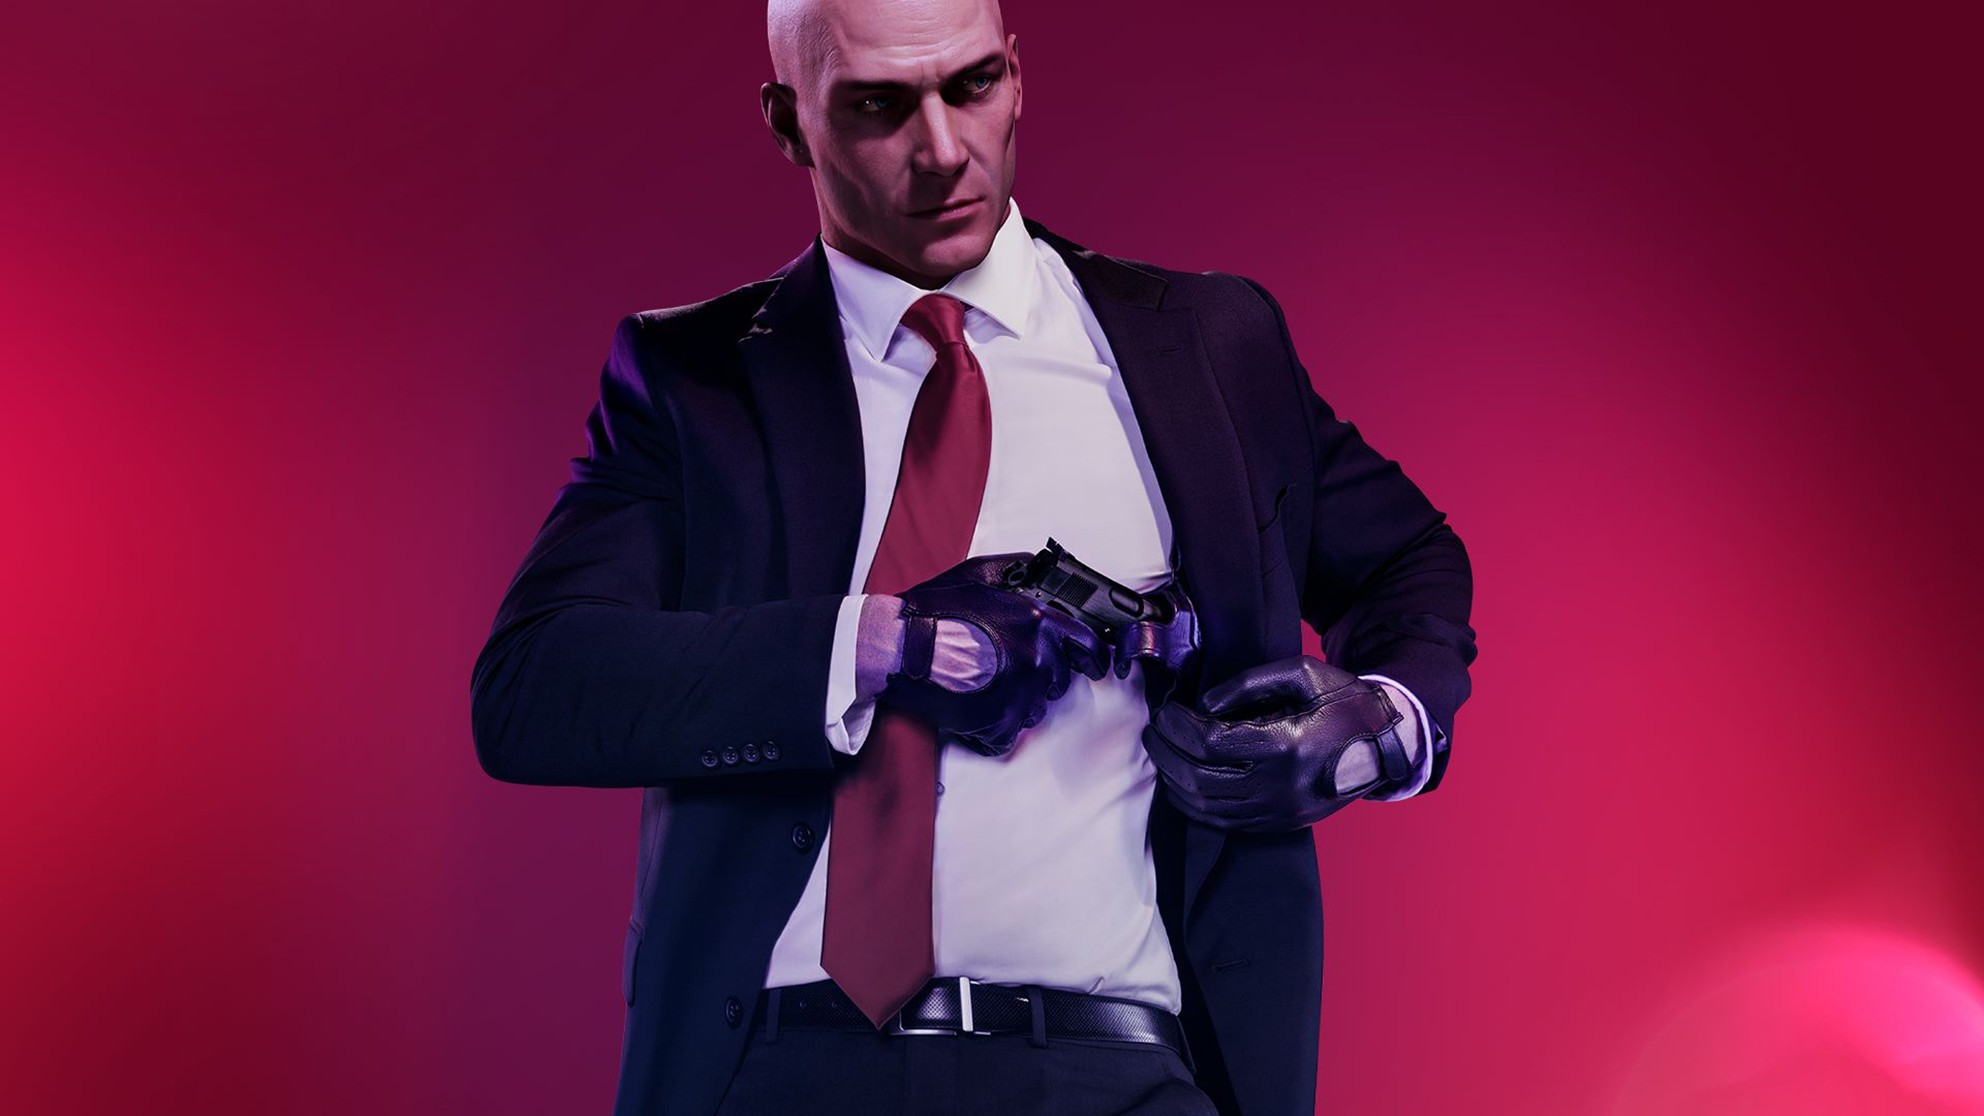 Hitman 2 release date, trailer and gameplay details